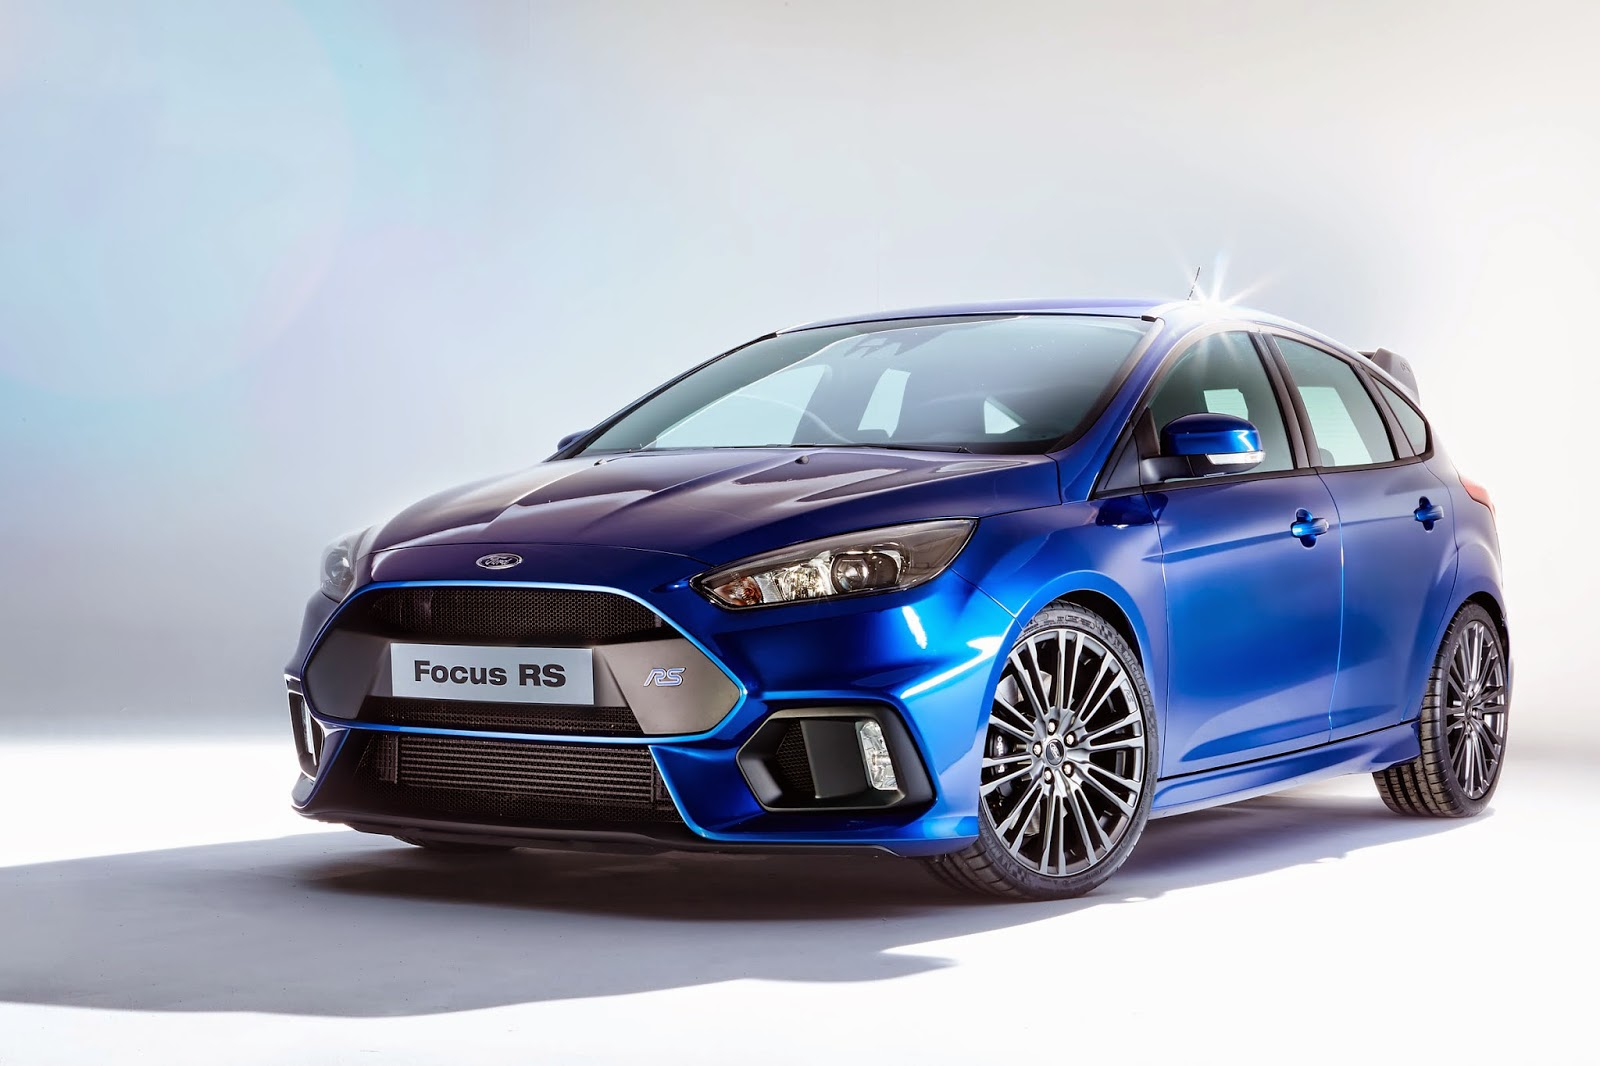 Ford Focus Rs 2016 Nice Car Wallpaper Car Wallpaper Hd